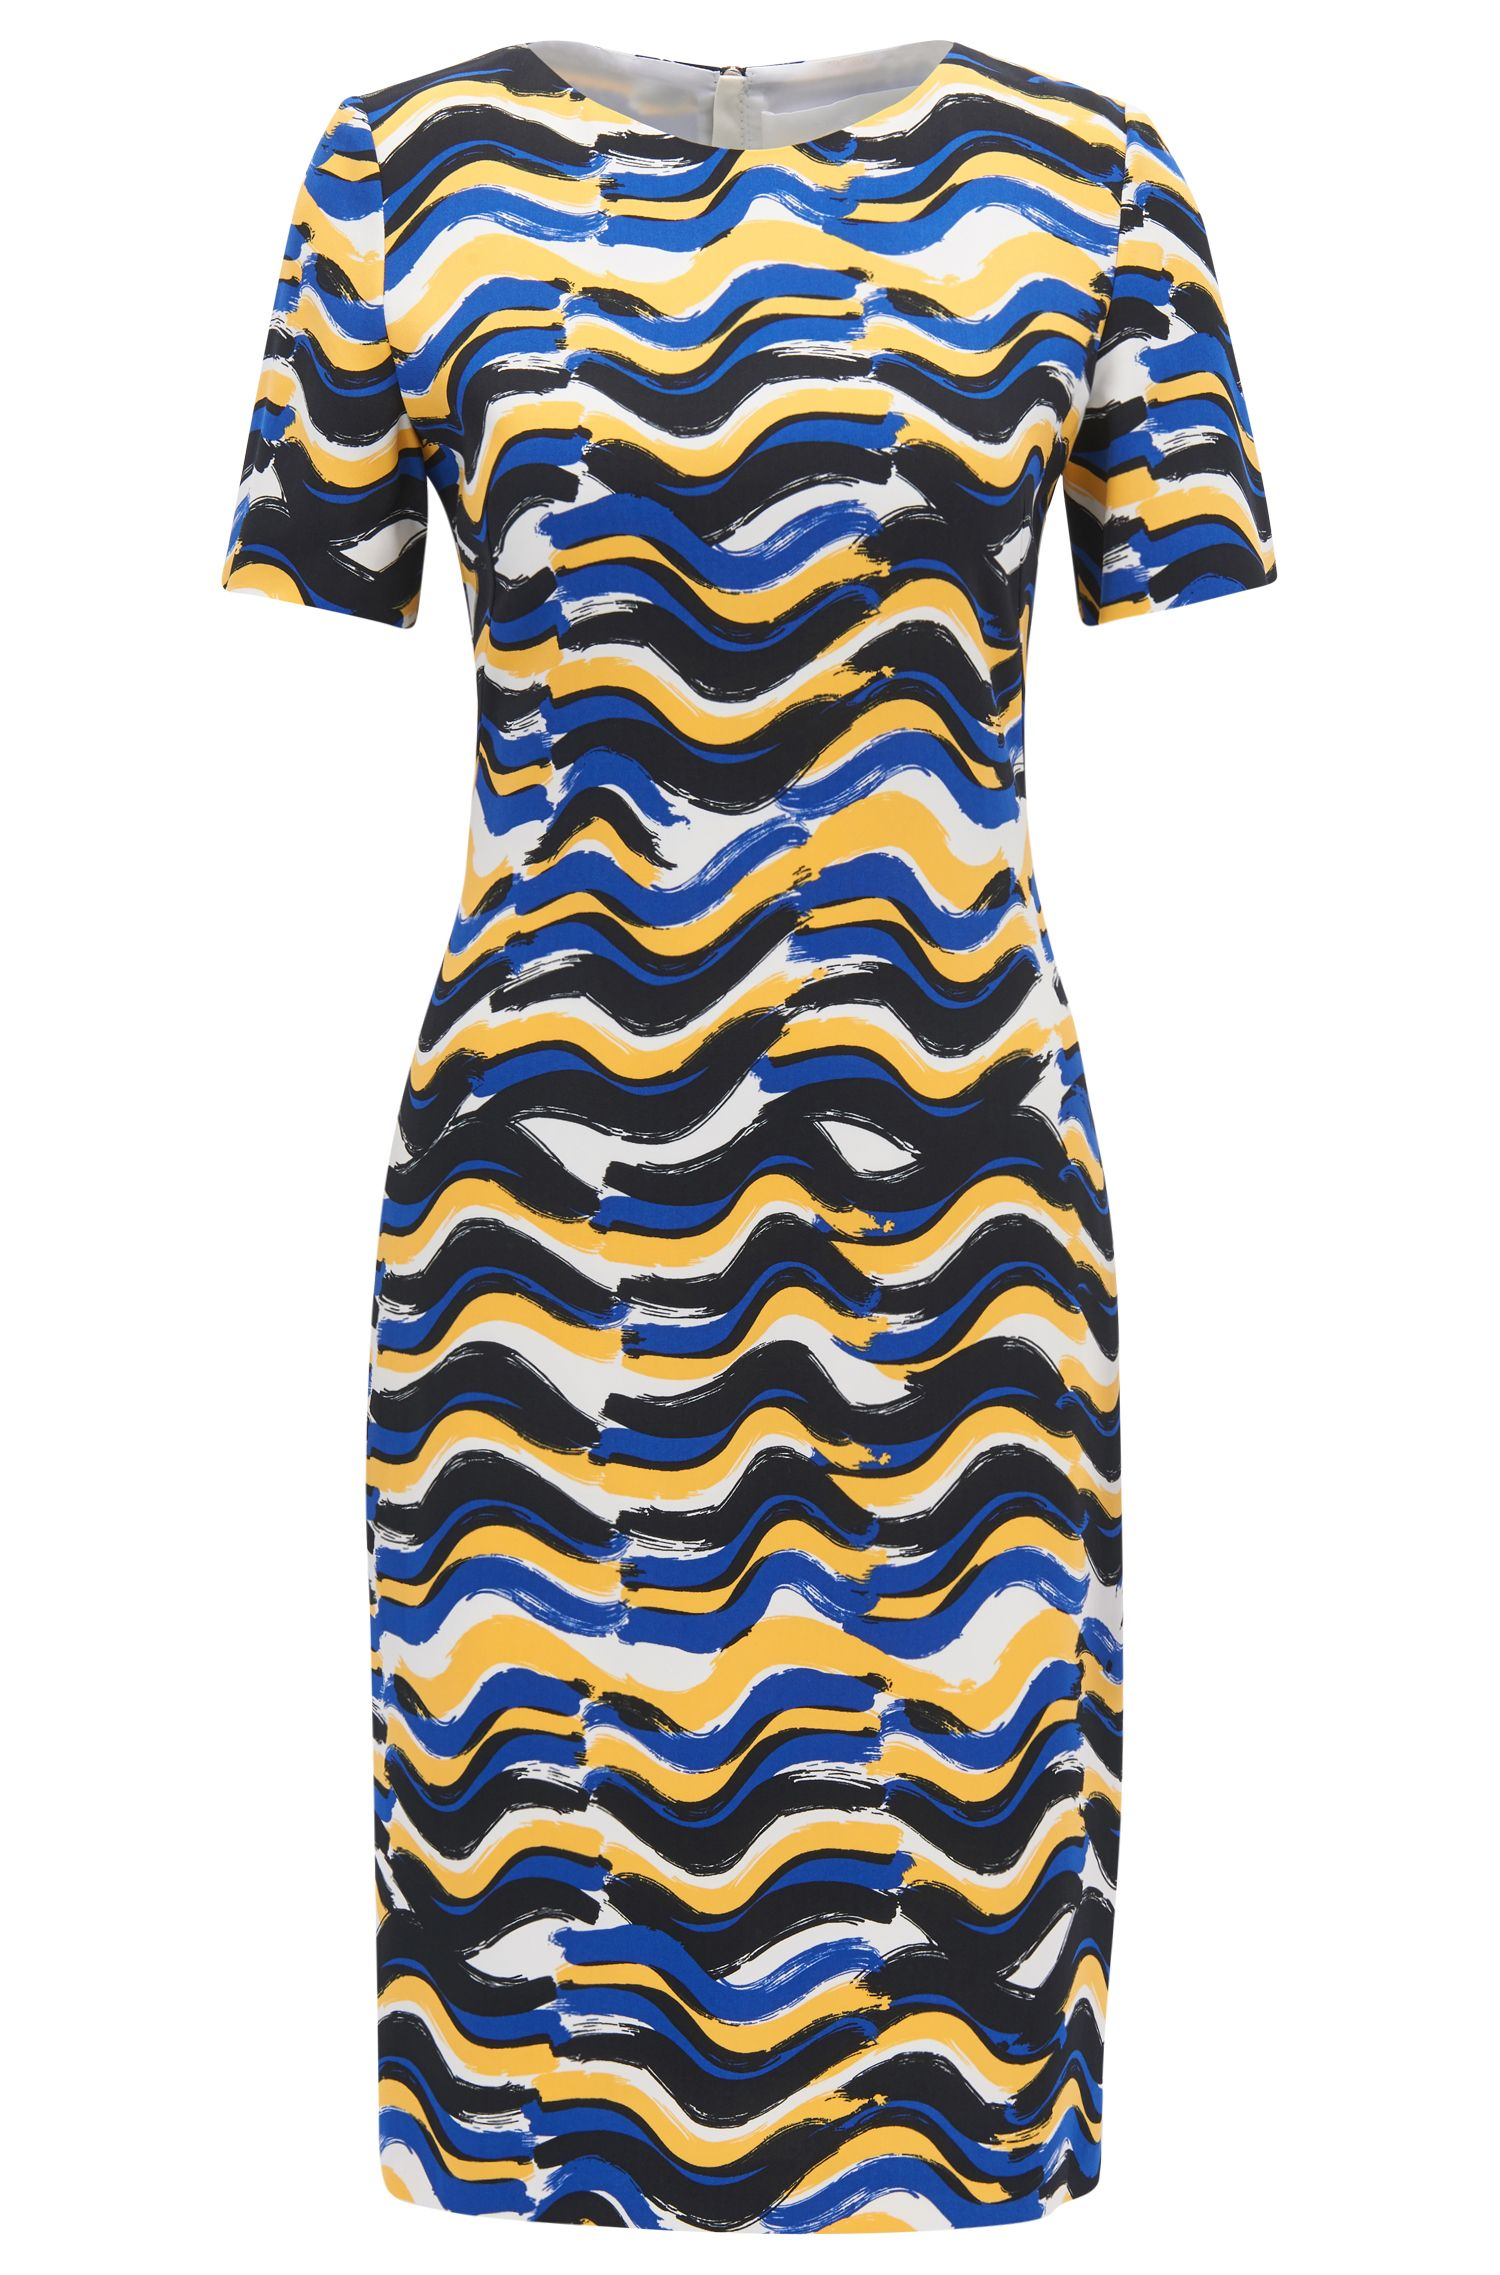 Wave-Print Sheath Dress | Dashiba, Patterned